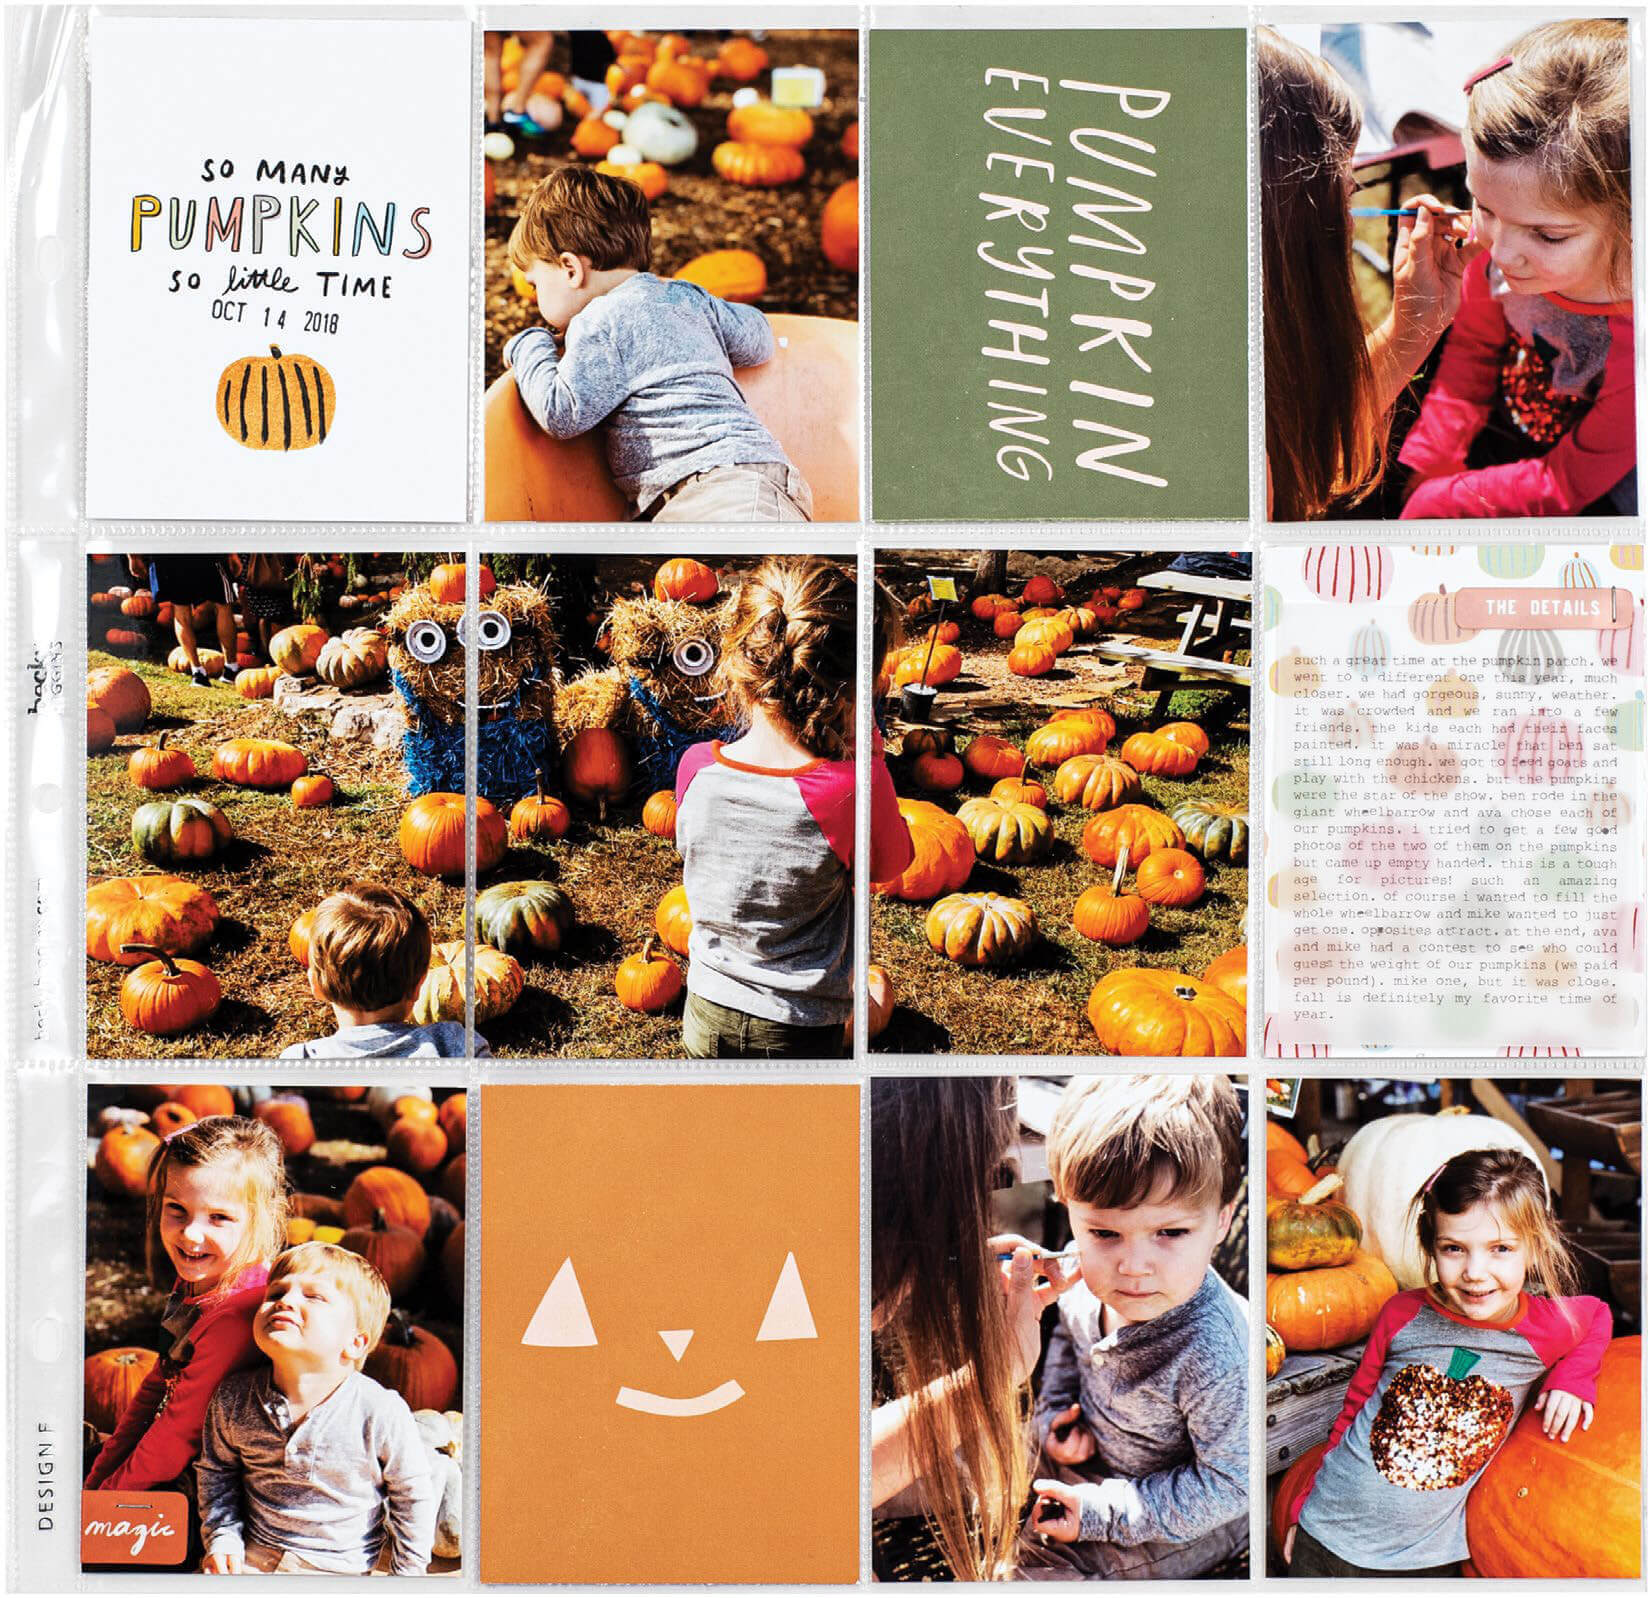 SCT Fall 2019 - So Many Pumpkins by Lisa Williams Varshine